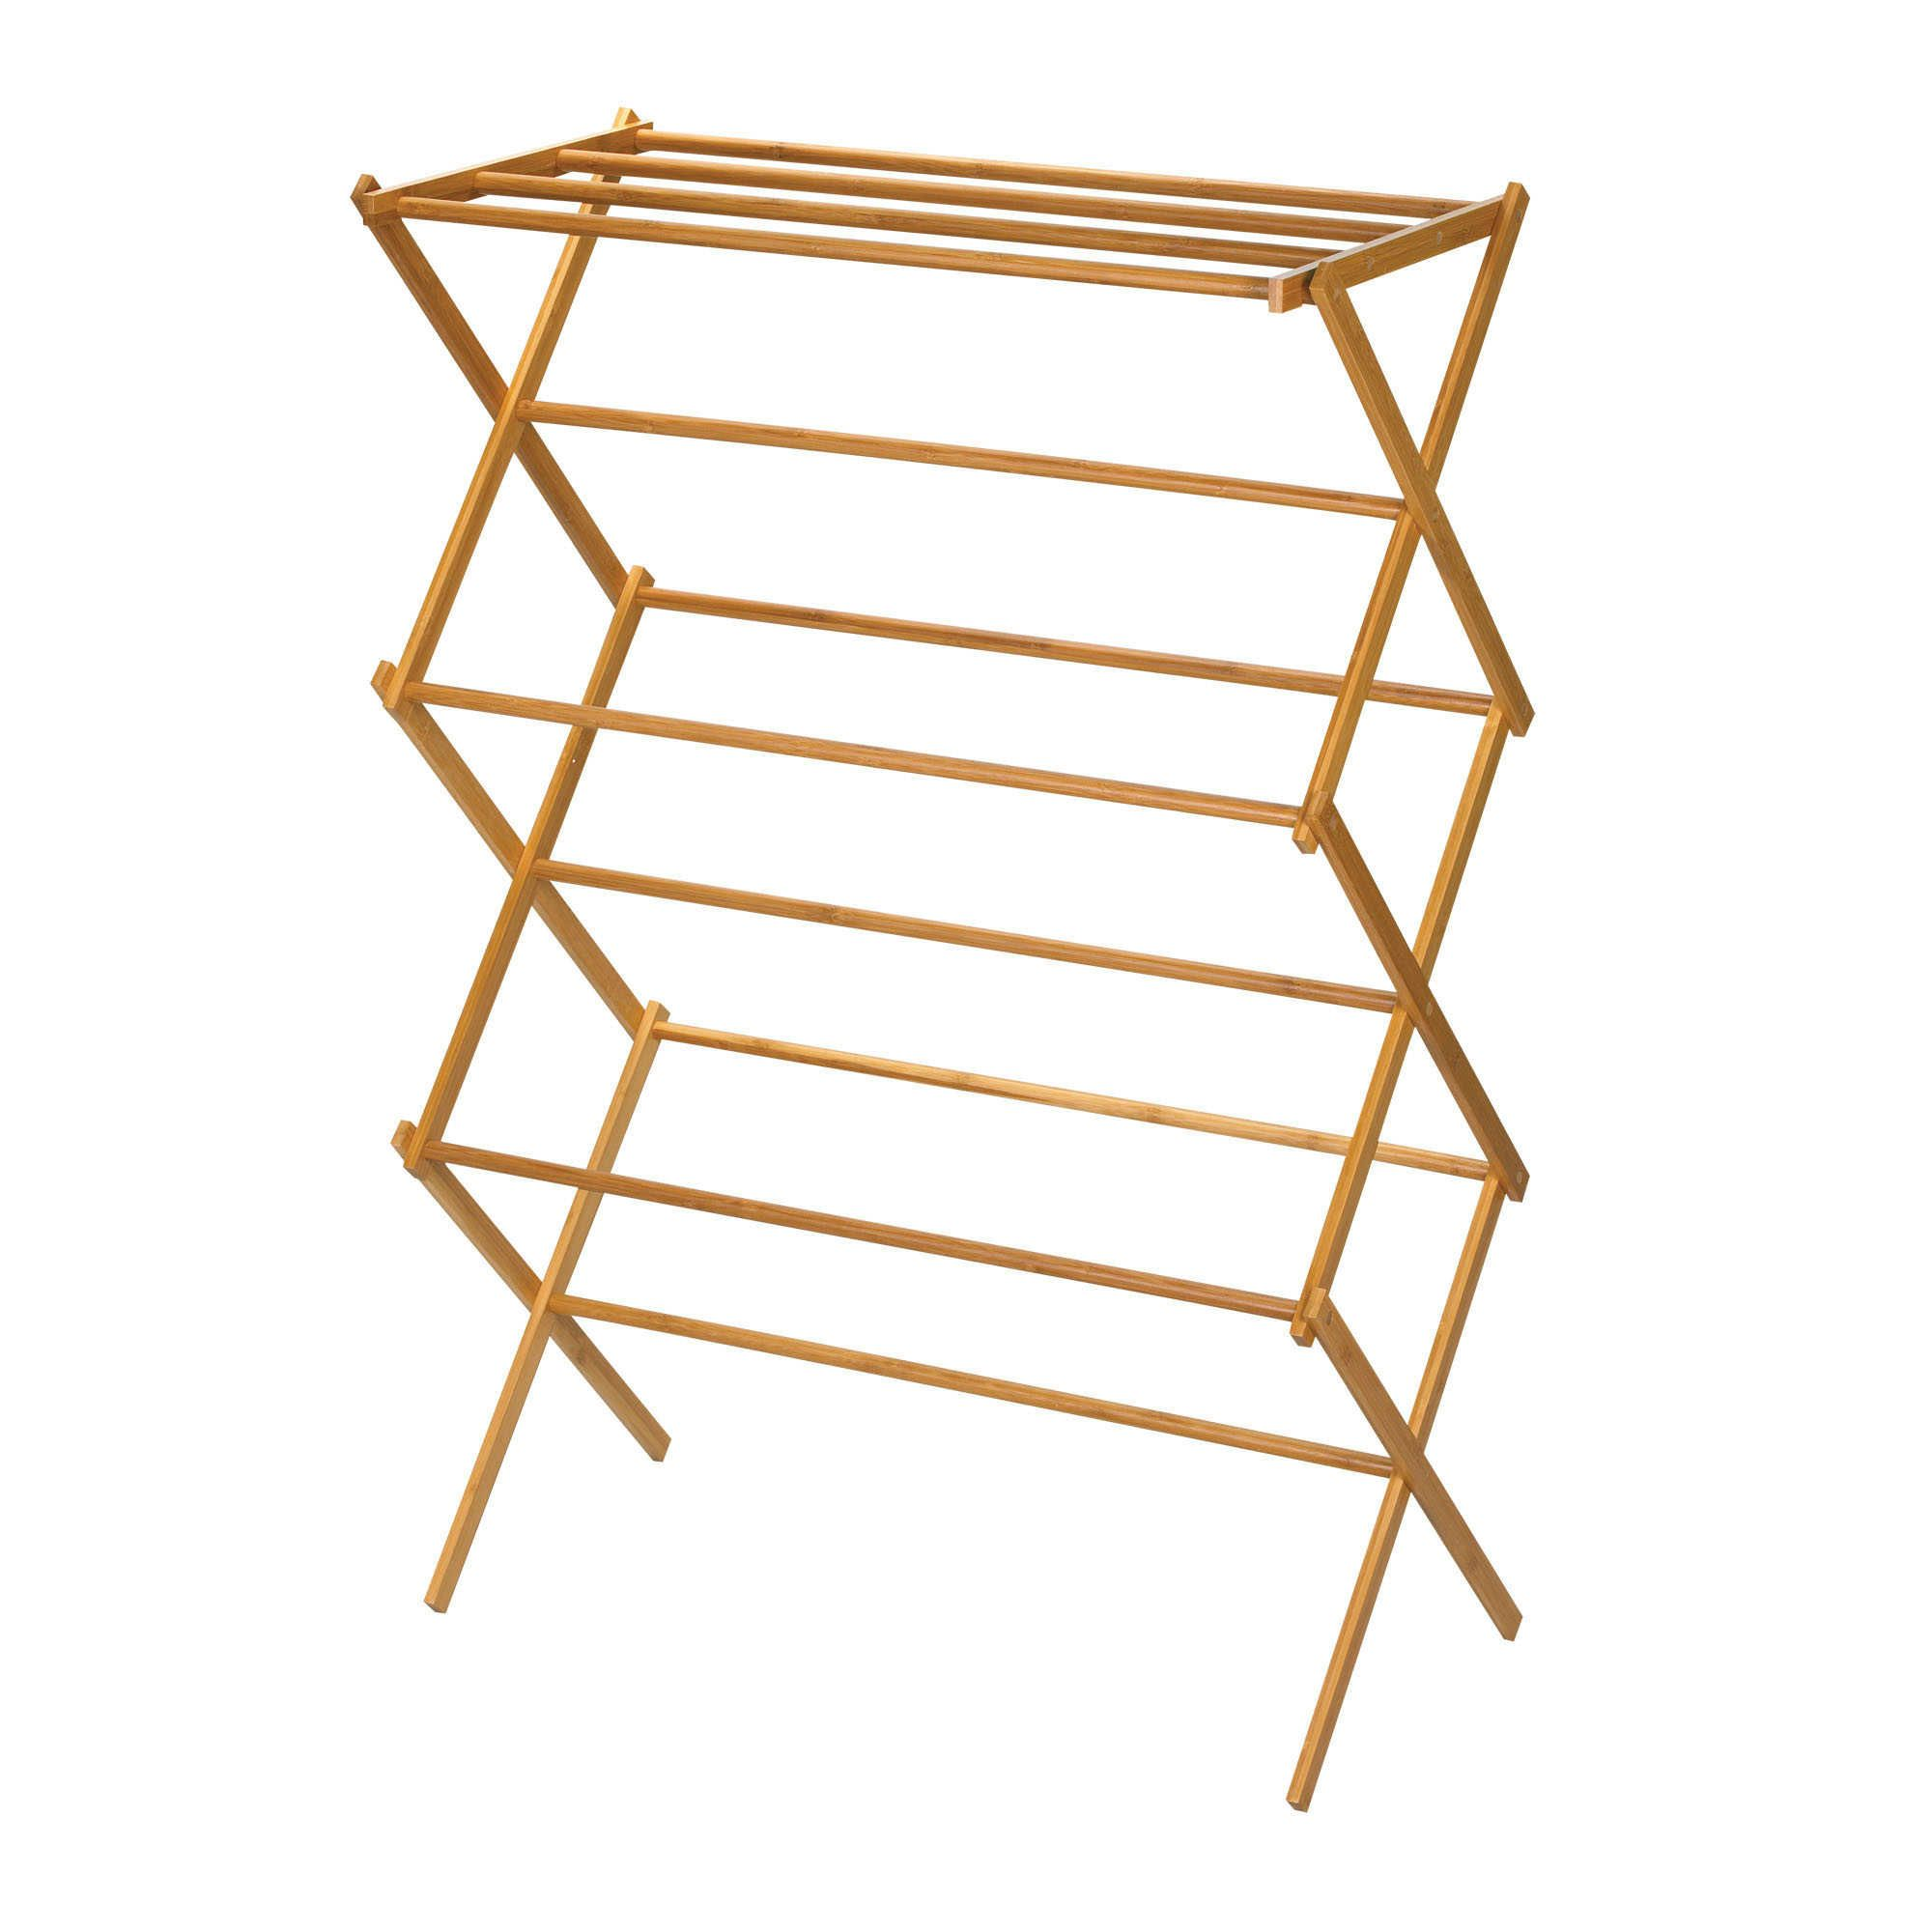 Household Essentials Bamboo X Frame Clothes Drying Rack Is Made